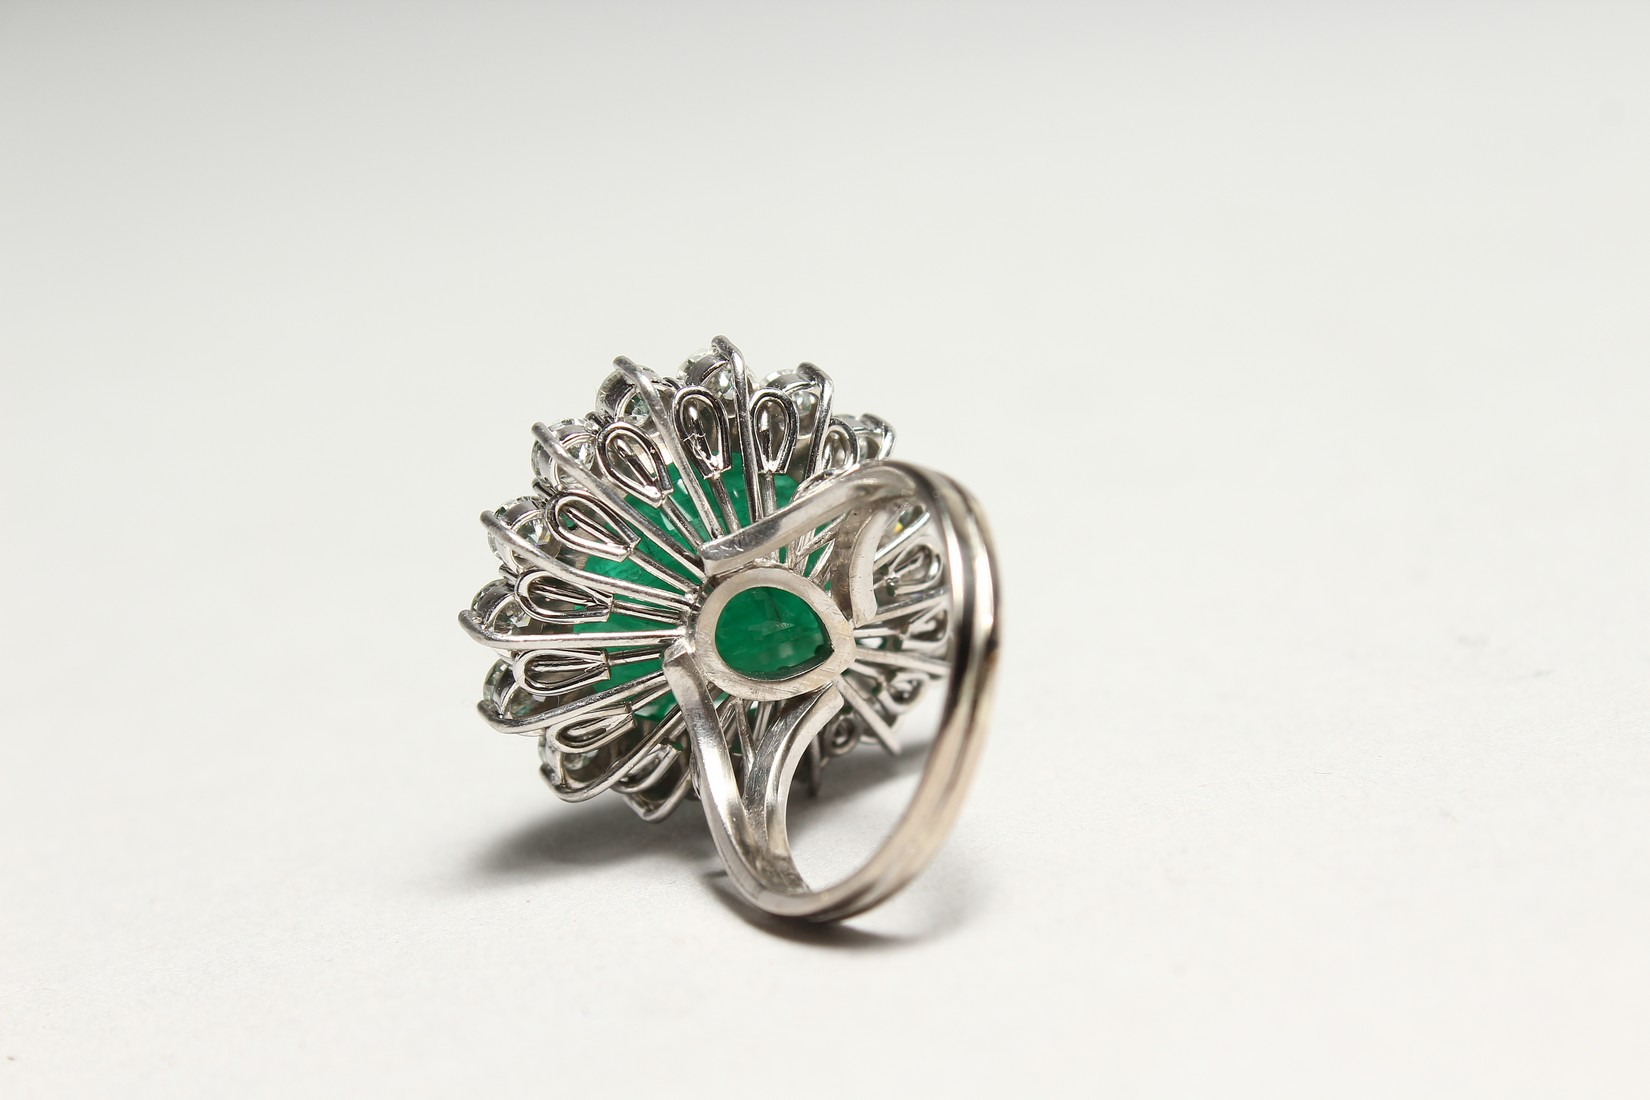 A SUPERB 18CT WHITE GOLD TIER DROP EMERALD AND DIAMOND RING set with a large emerald surrounded by - Image 3 of 3